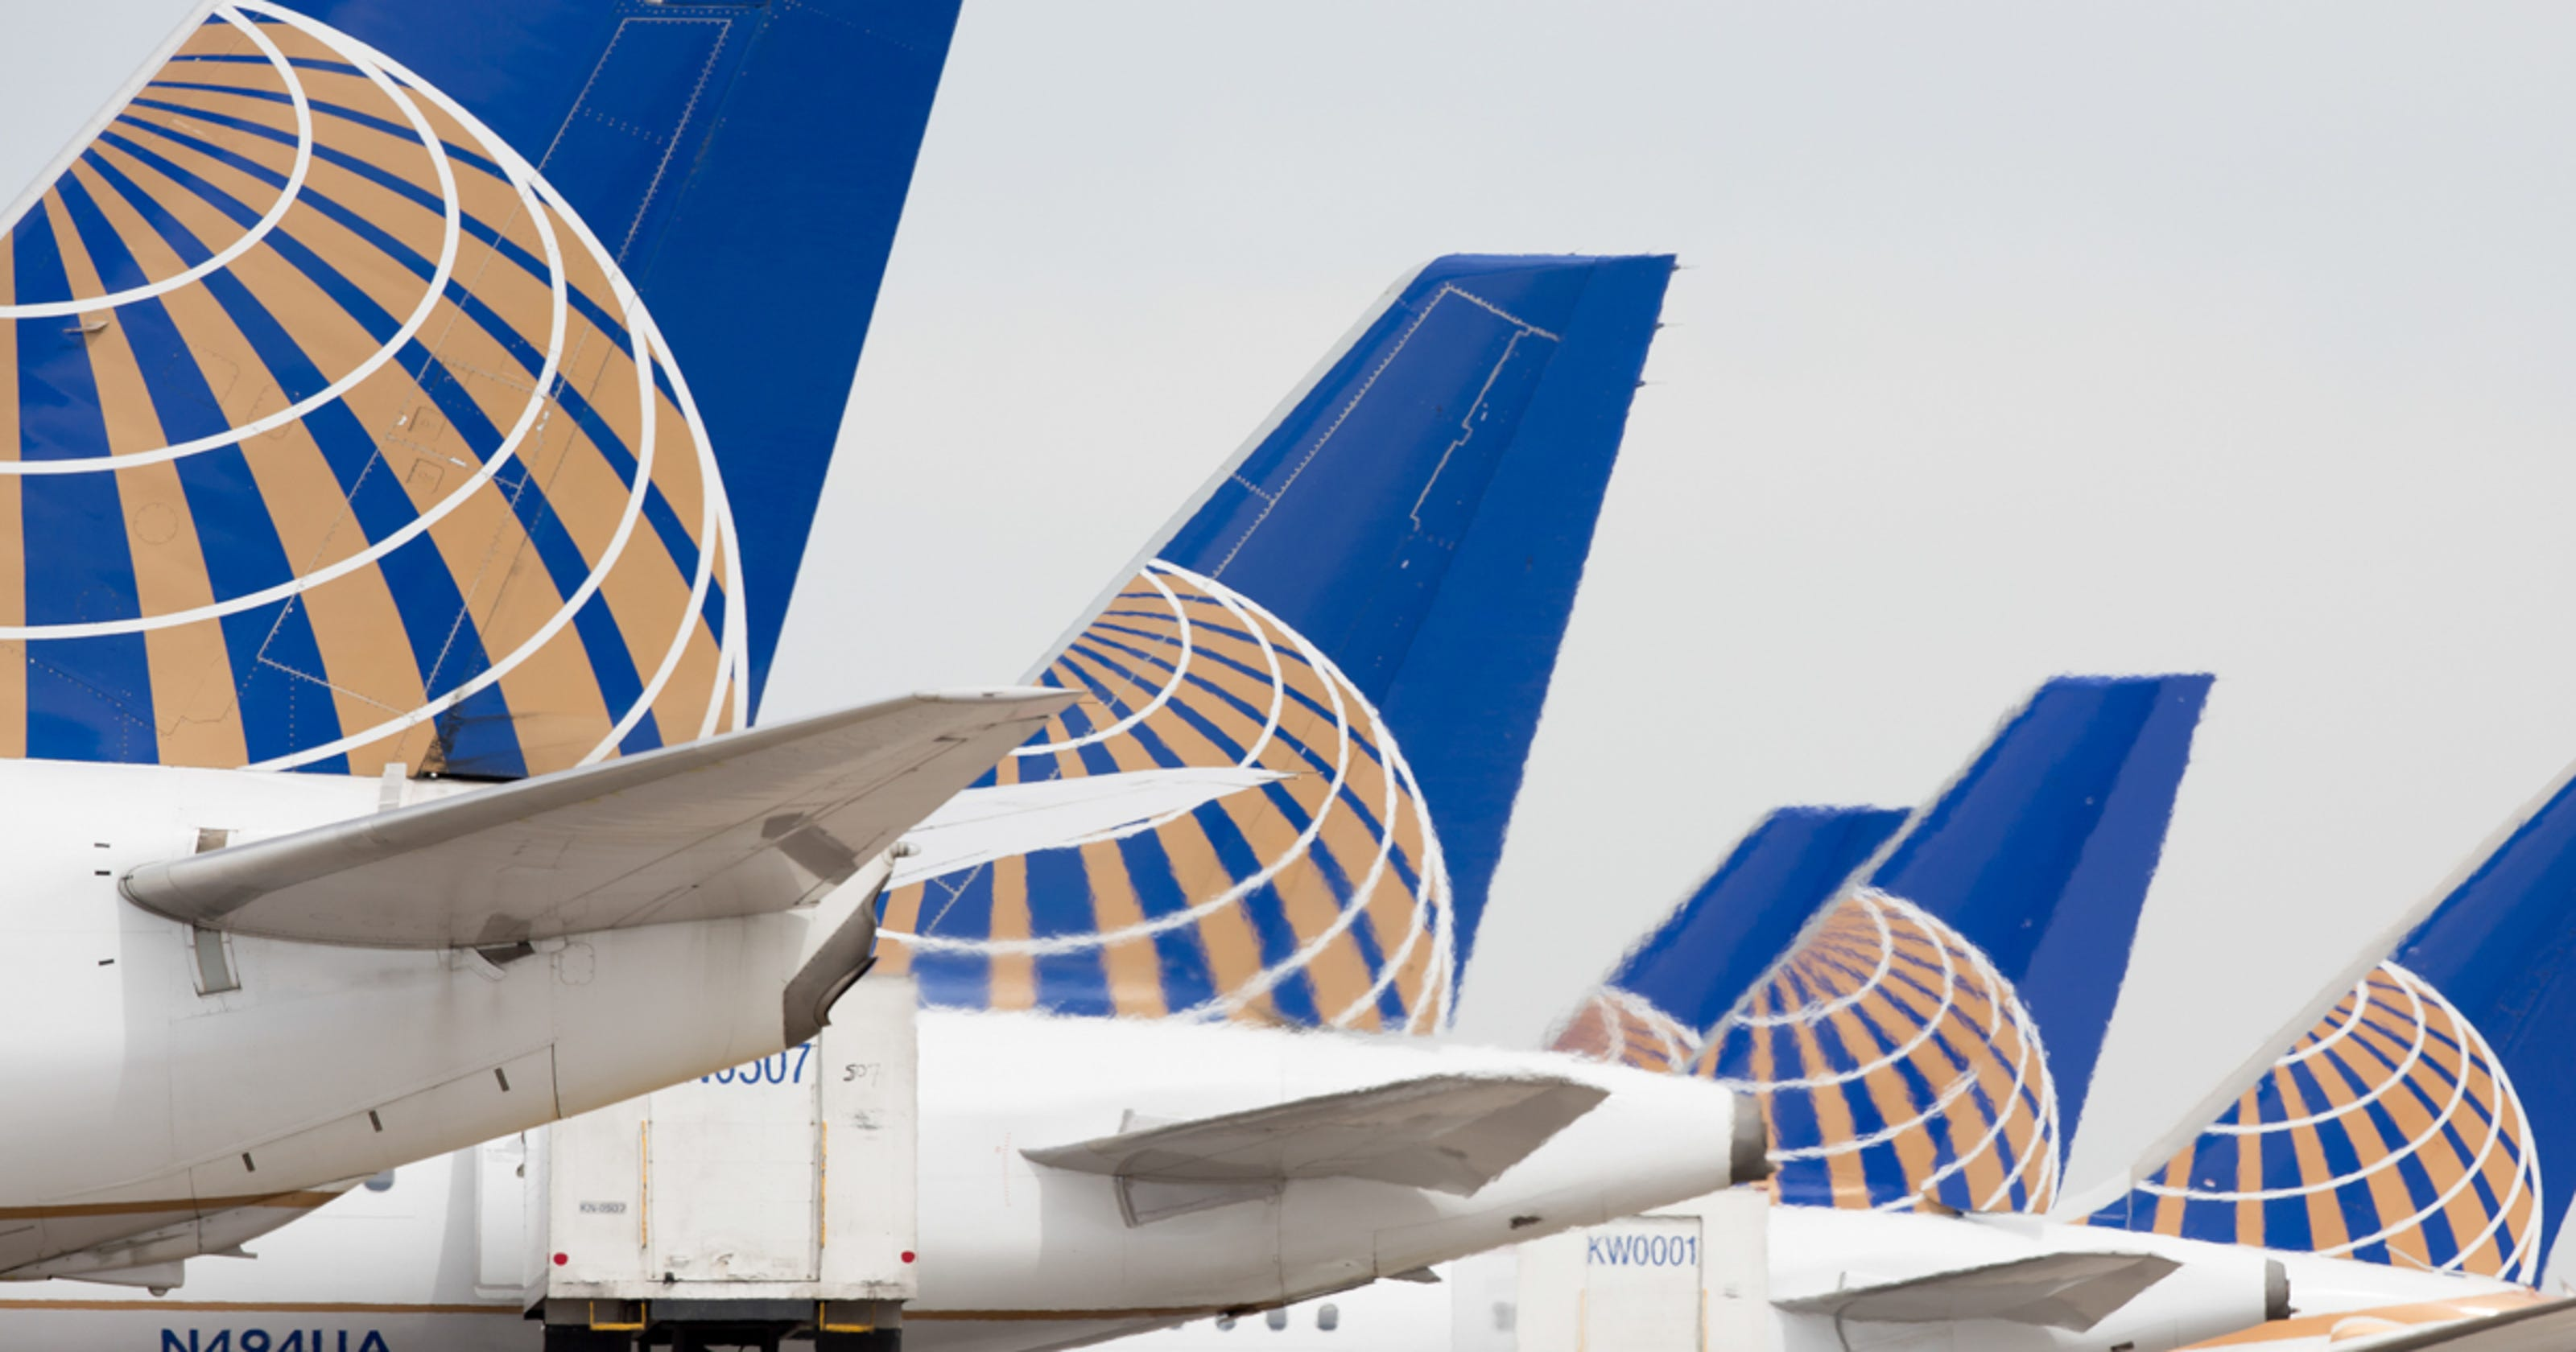 Pets on flights: United limits cargo transport to dogs and cats